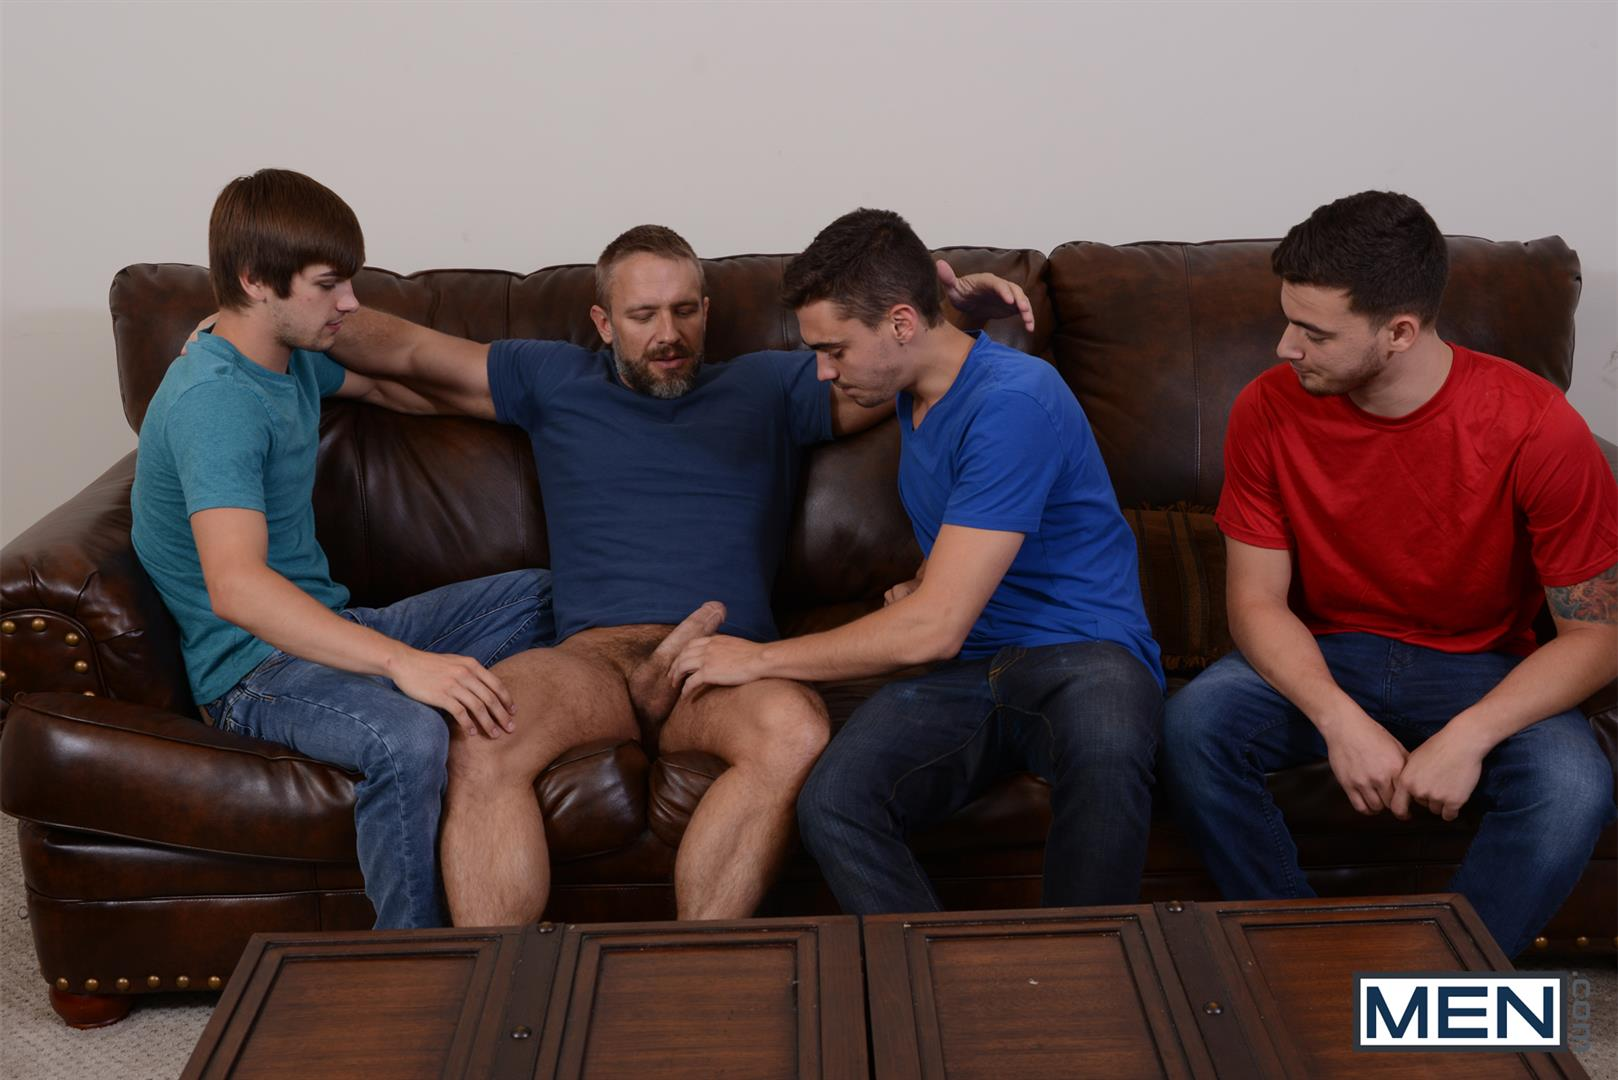 Men Jizz Orgy Asher Hawk and Dirk Caber and Johnny Rapid and Trevor Spade Triple Penetrated In the Ass Amateur Gay Porn 03